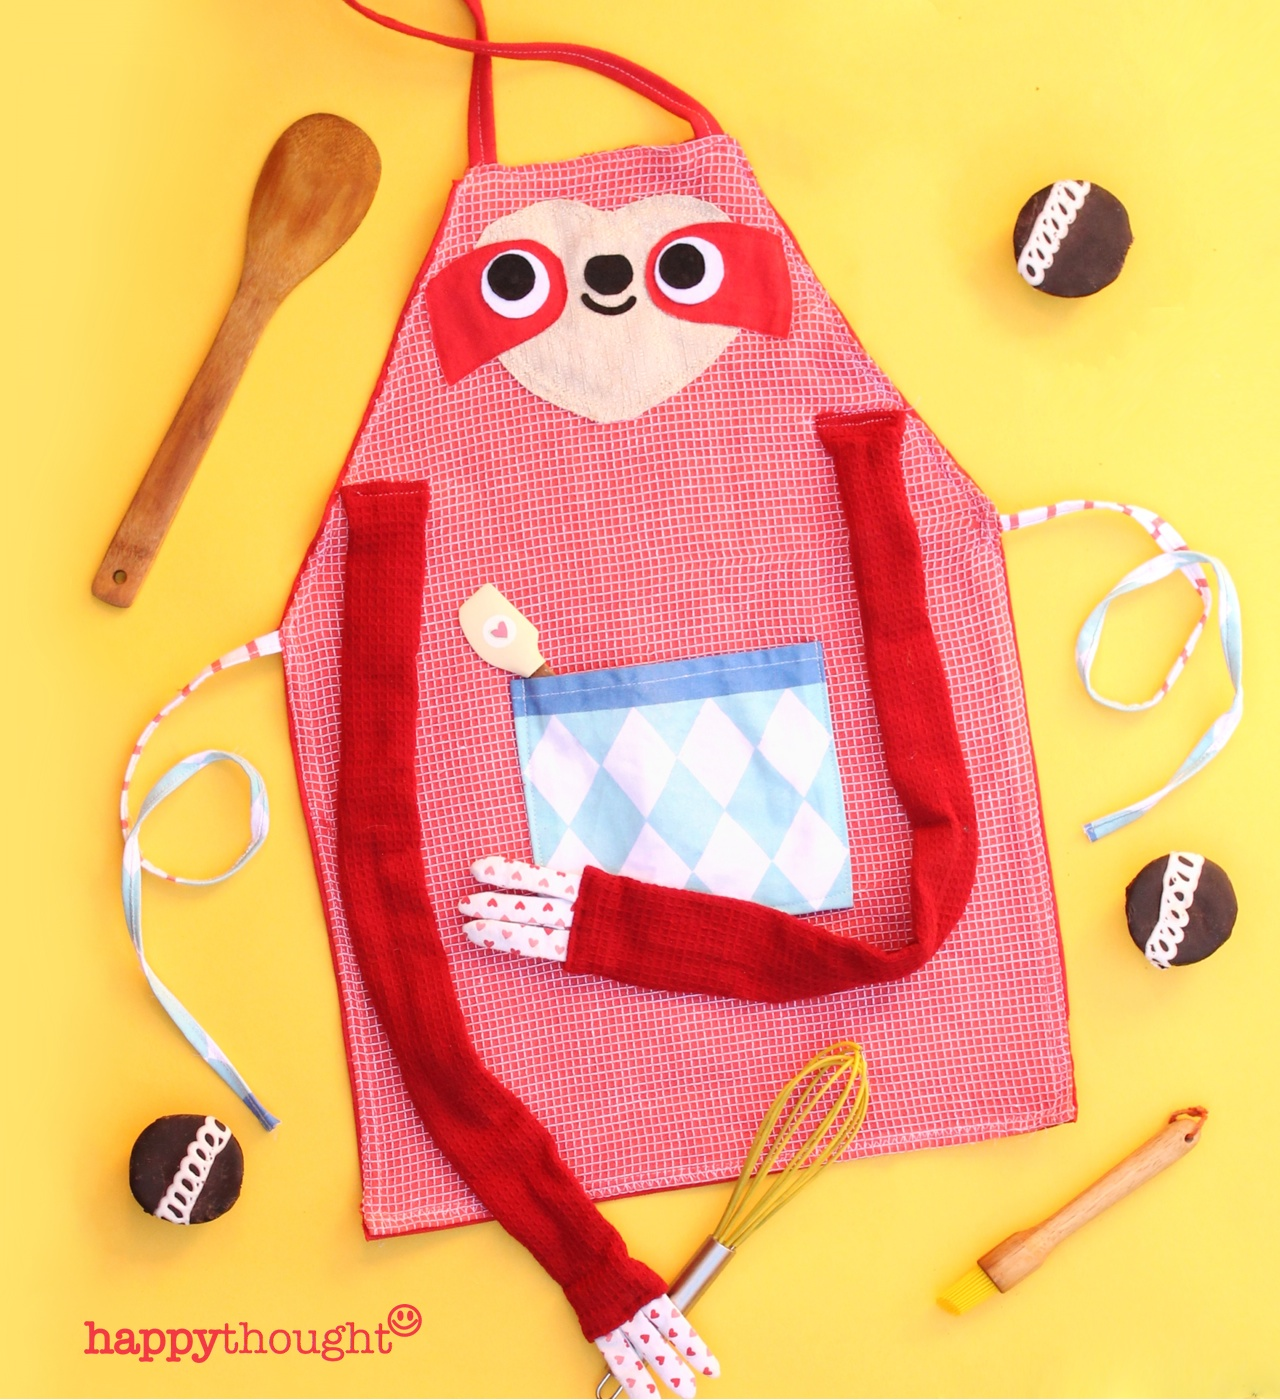 Choose some colorful tea towels and get crafting. Make a fun sloth apron with our easy step-by-step.